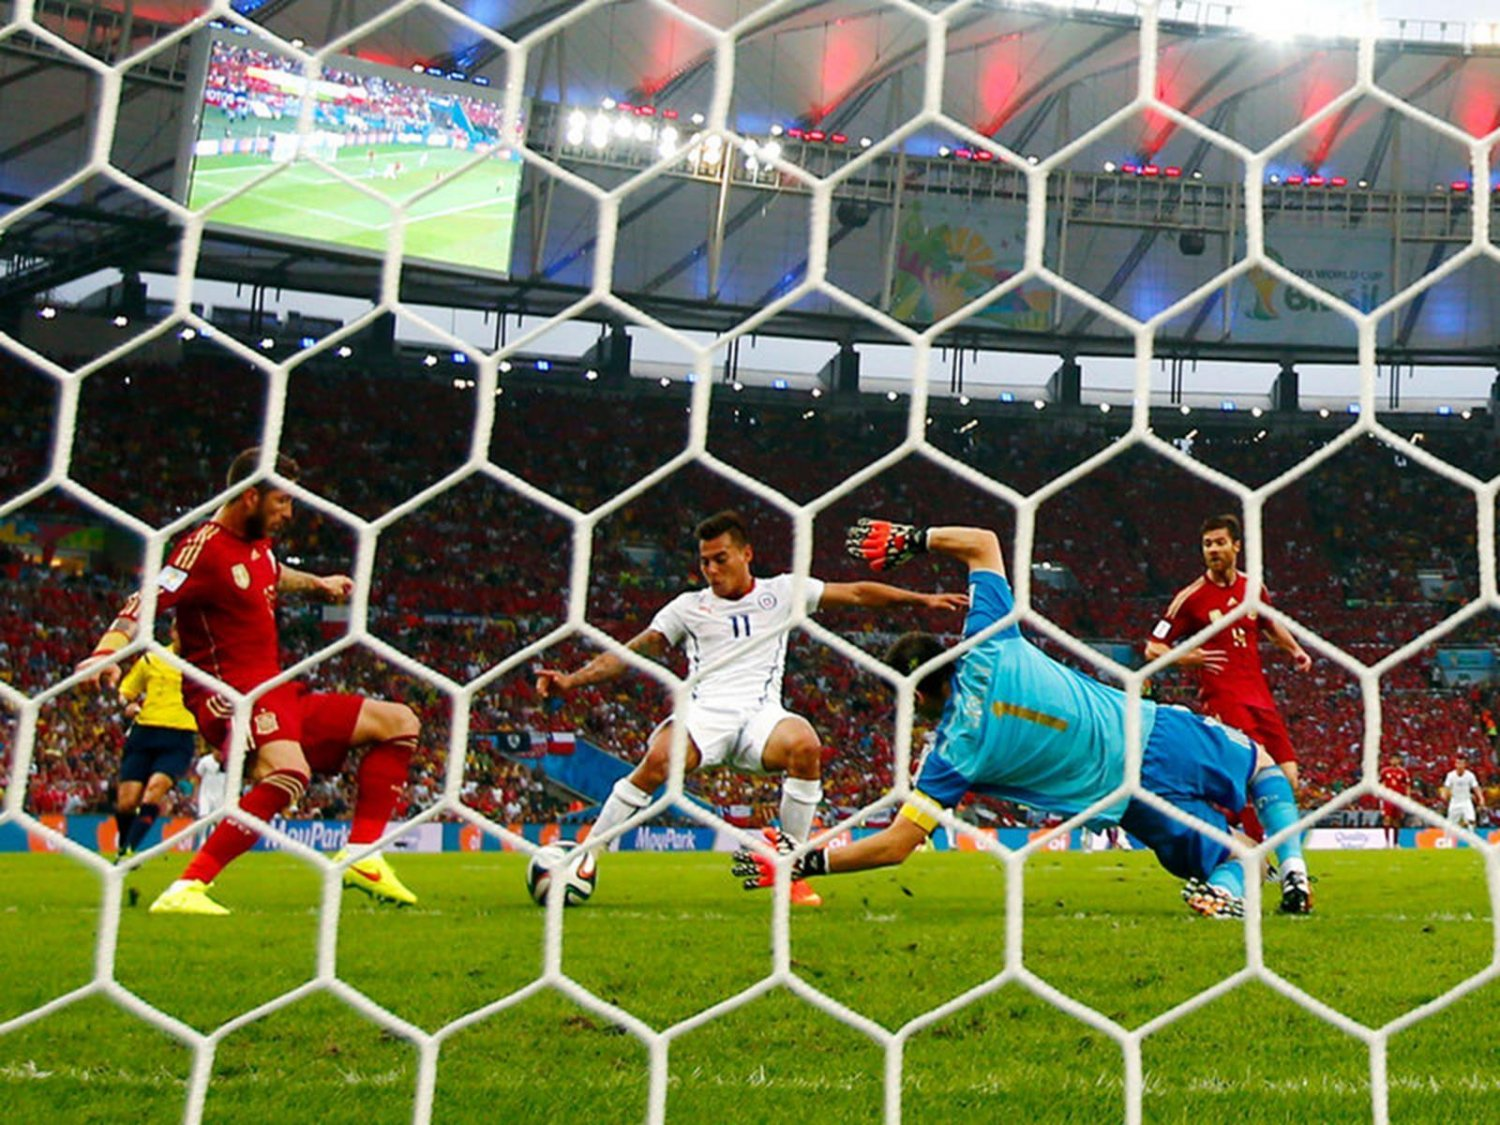 WC 0155 - 8 X 6 Photo - Football - FIFA World Cup 2014 - Spain V Chile -    Eduardo Vargas Scores